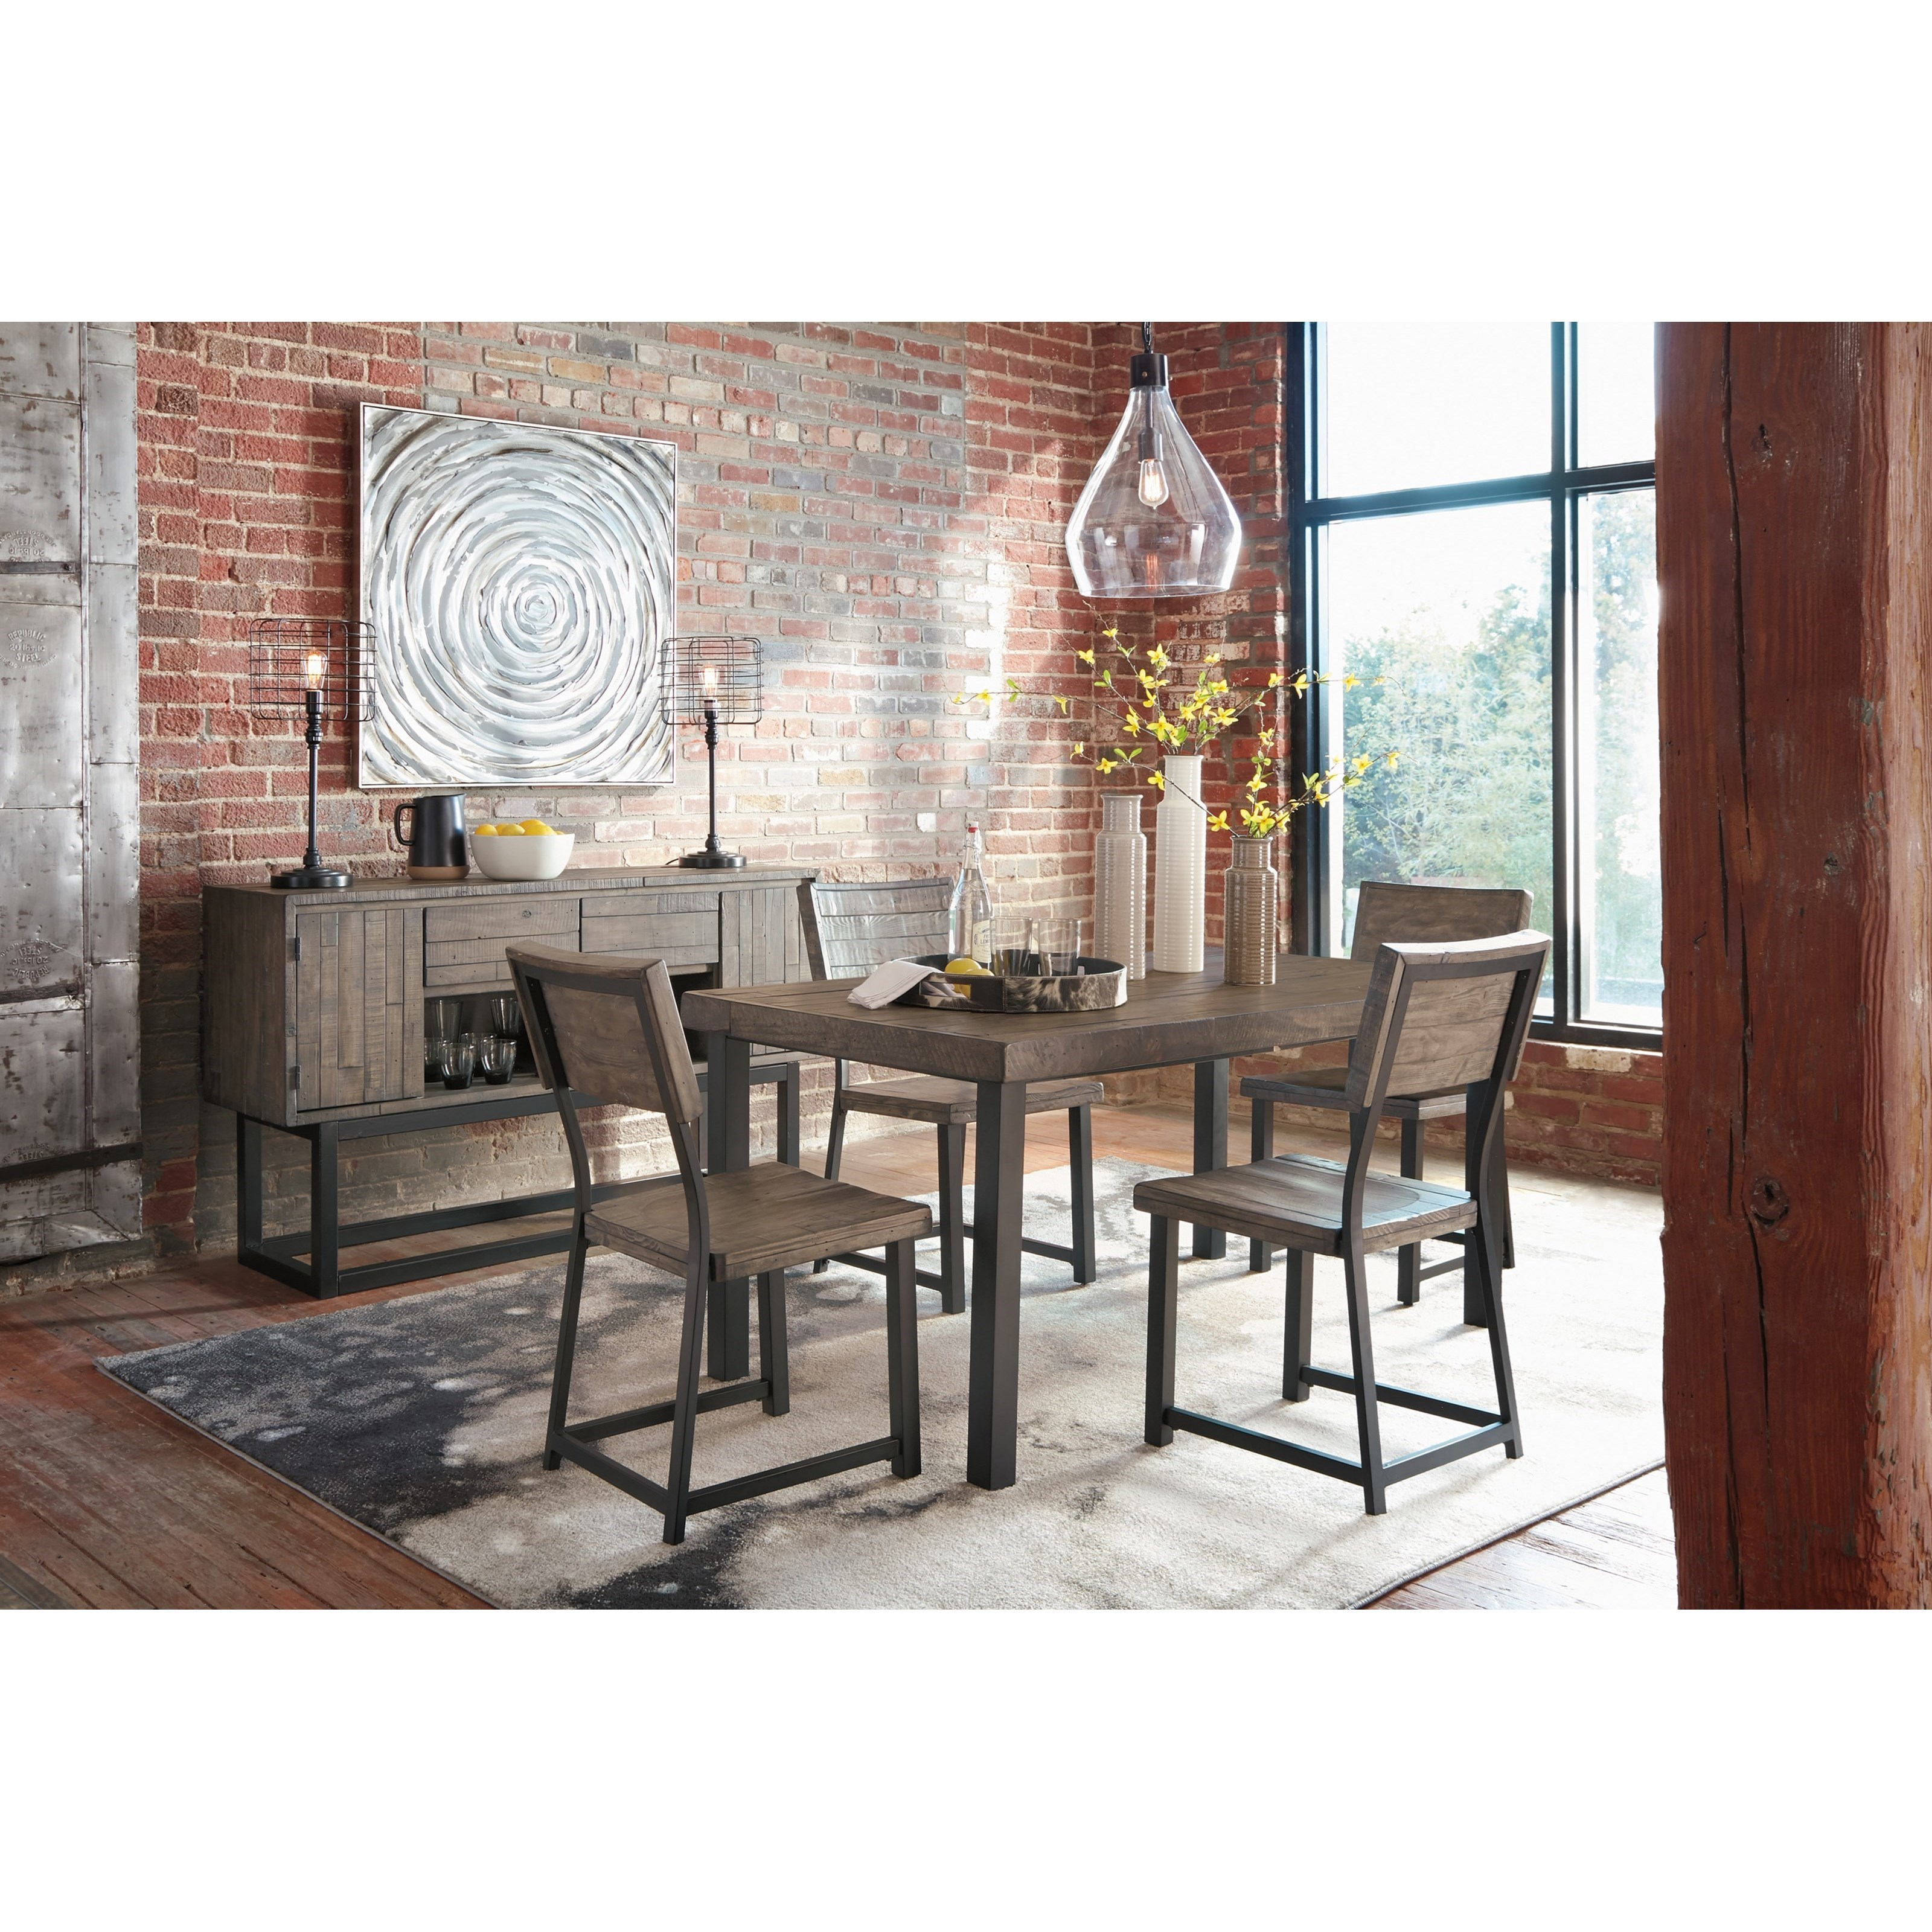 Cazentine Casual Dining Room Group by Signature Design by Ashley at Lapeer Furniture & Mattress Center